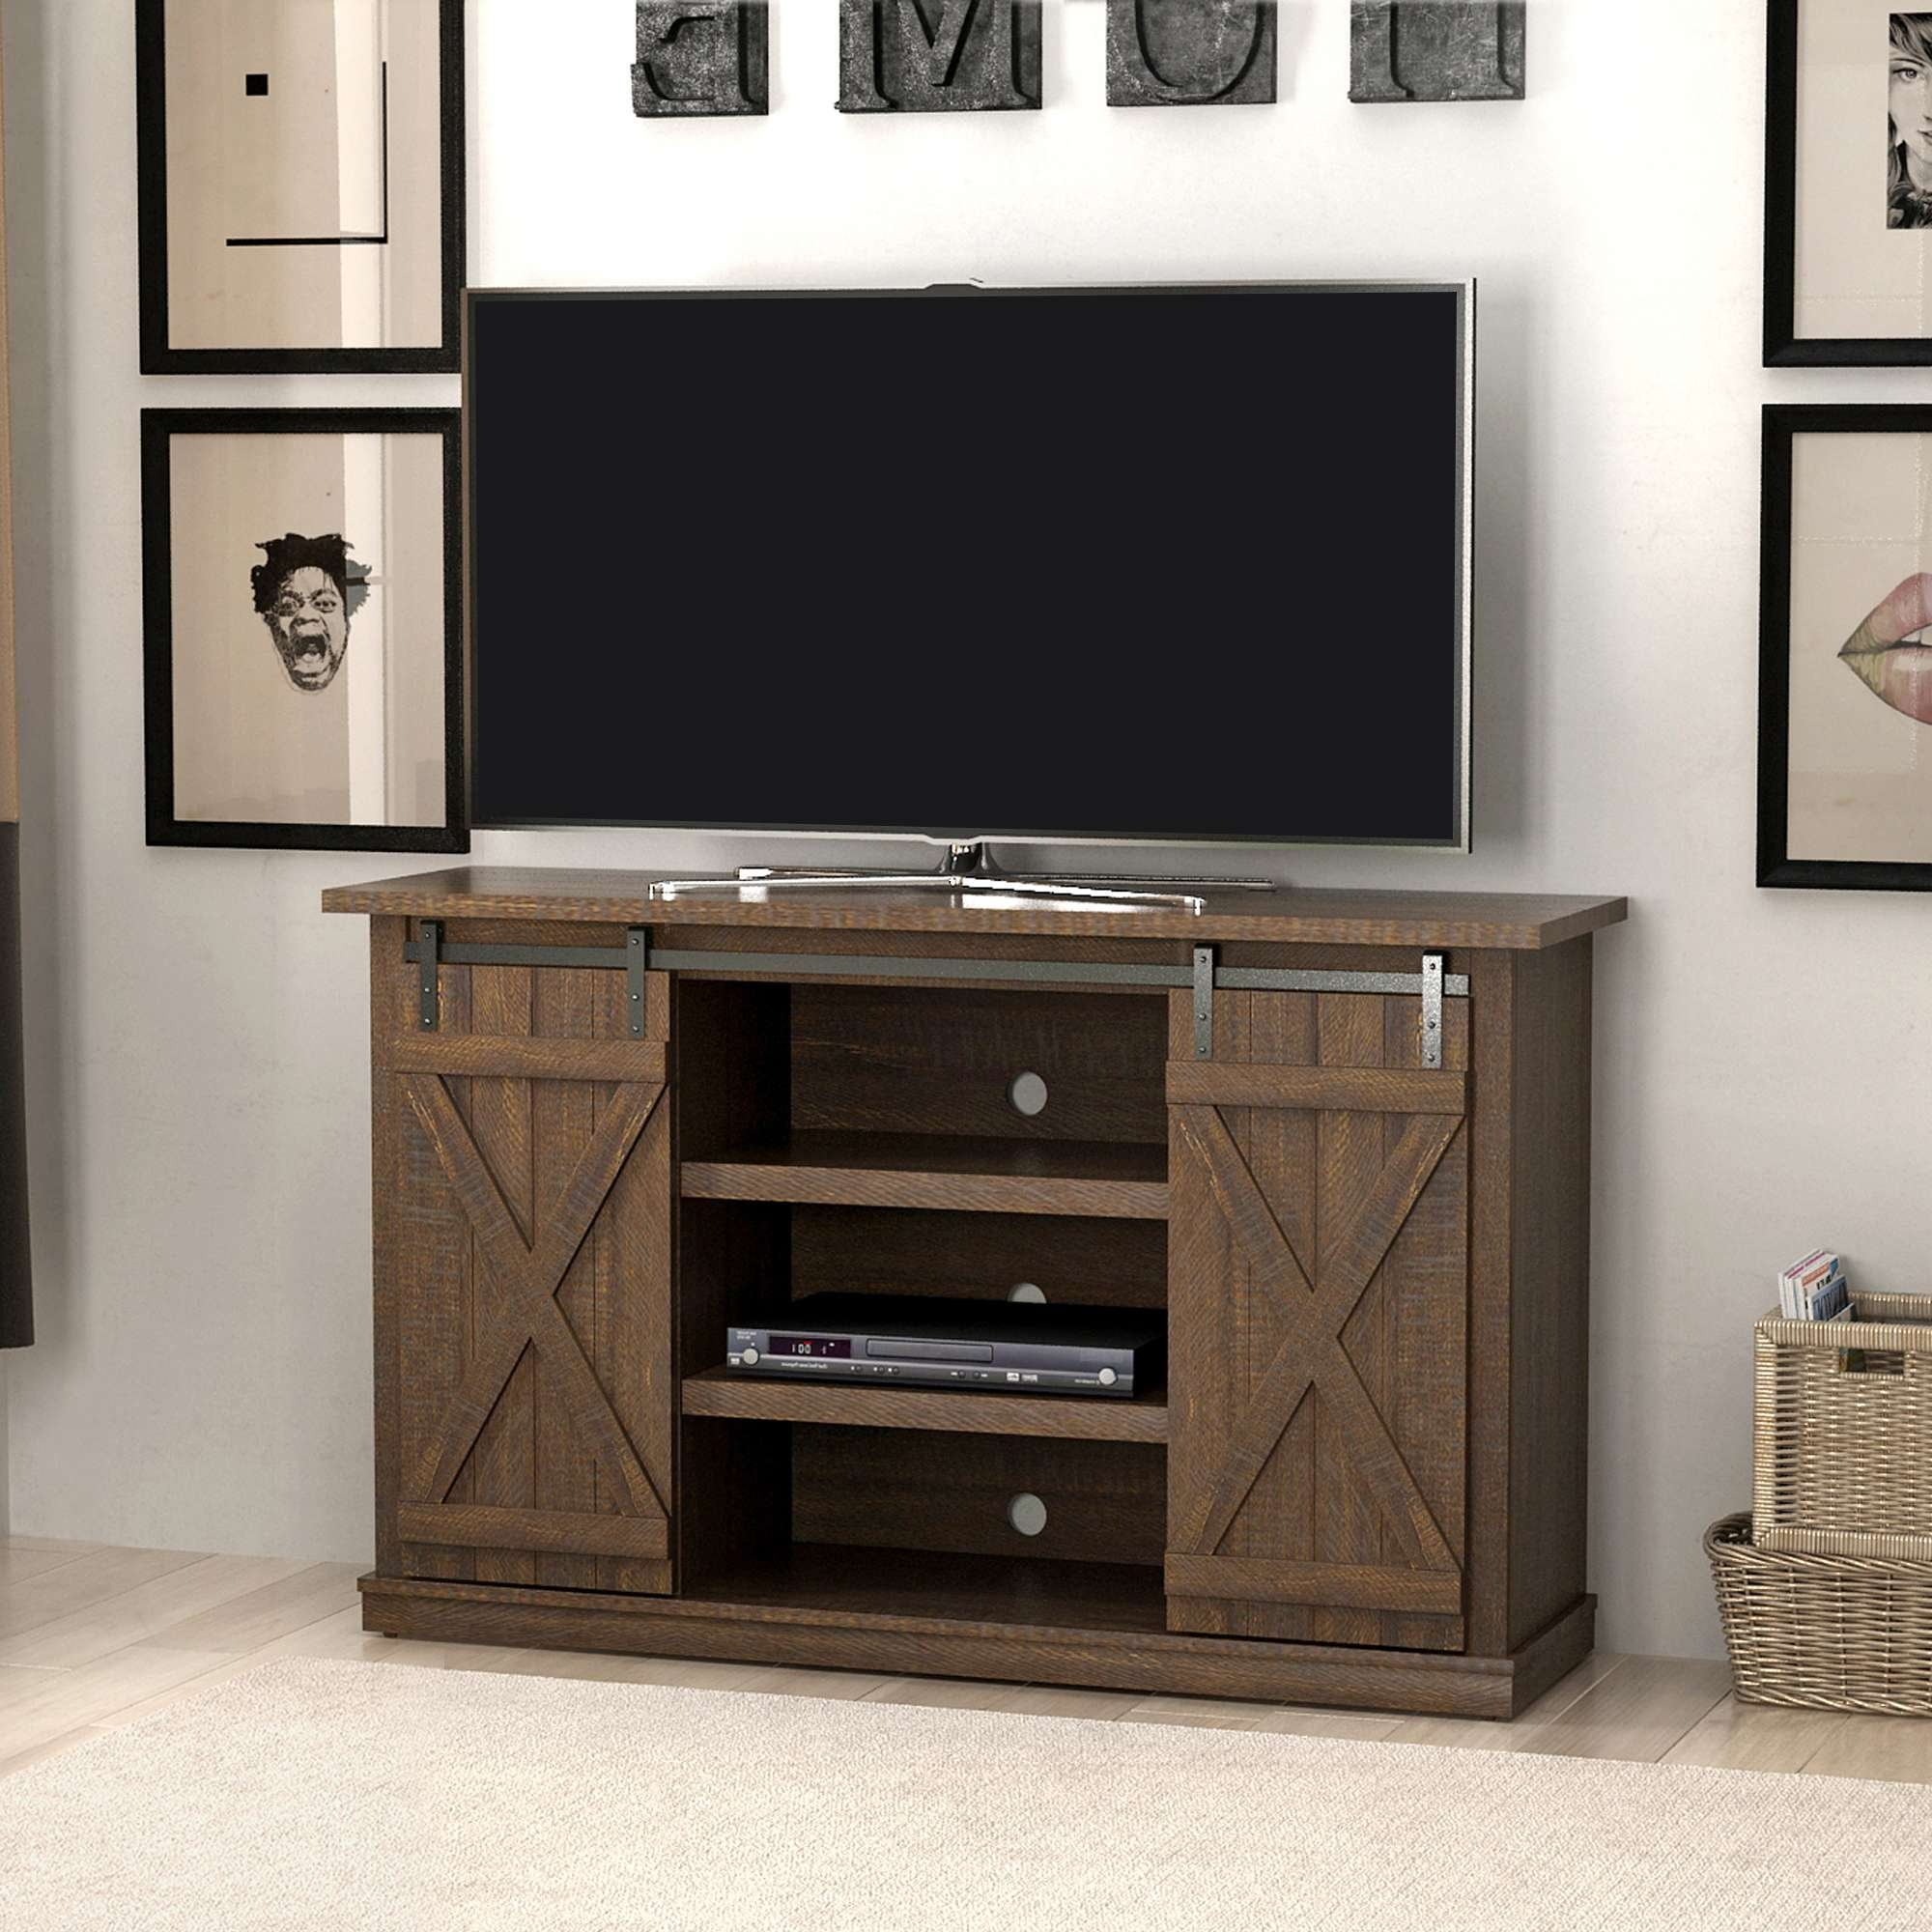 Tv Stands – Walmart Intended For Square Tv Stands (View 15 of 15)